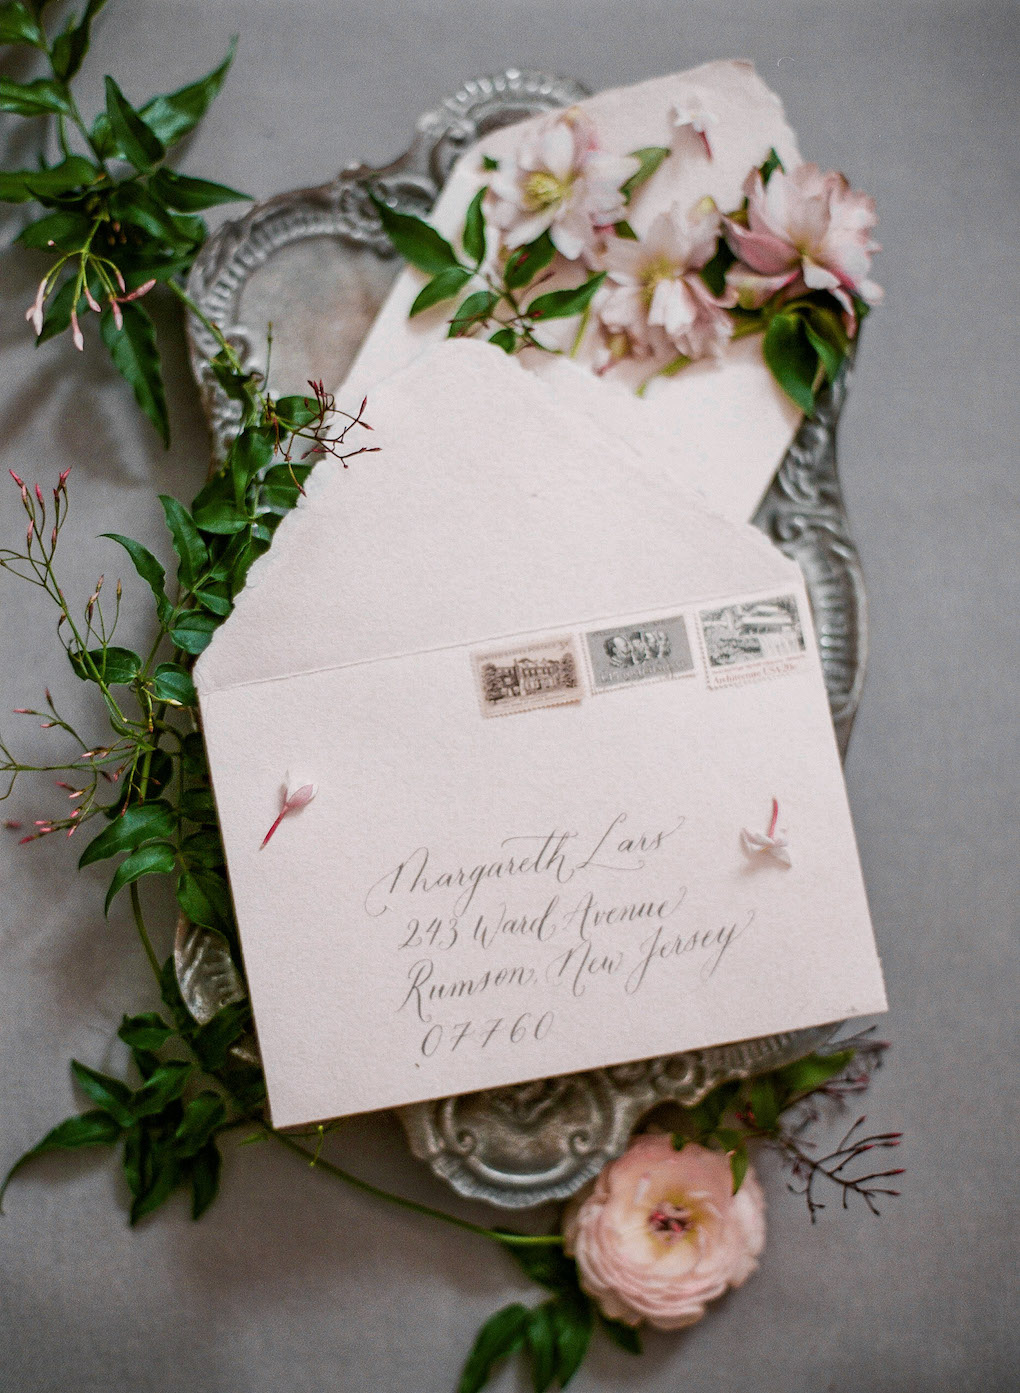 Wedding envelope addressing: Soft and Subtle Palettes of Spring Blossoms | Editorial Shoot at The Renaissance Pittsburgh by Exhale Events. See more inspiration at exhale-events.com!